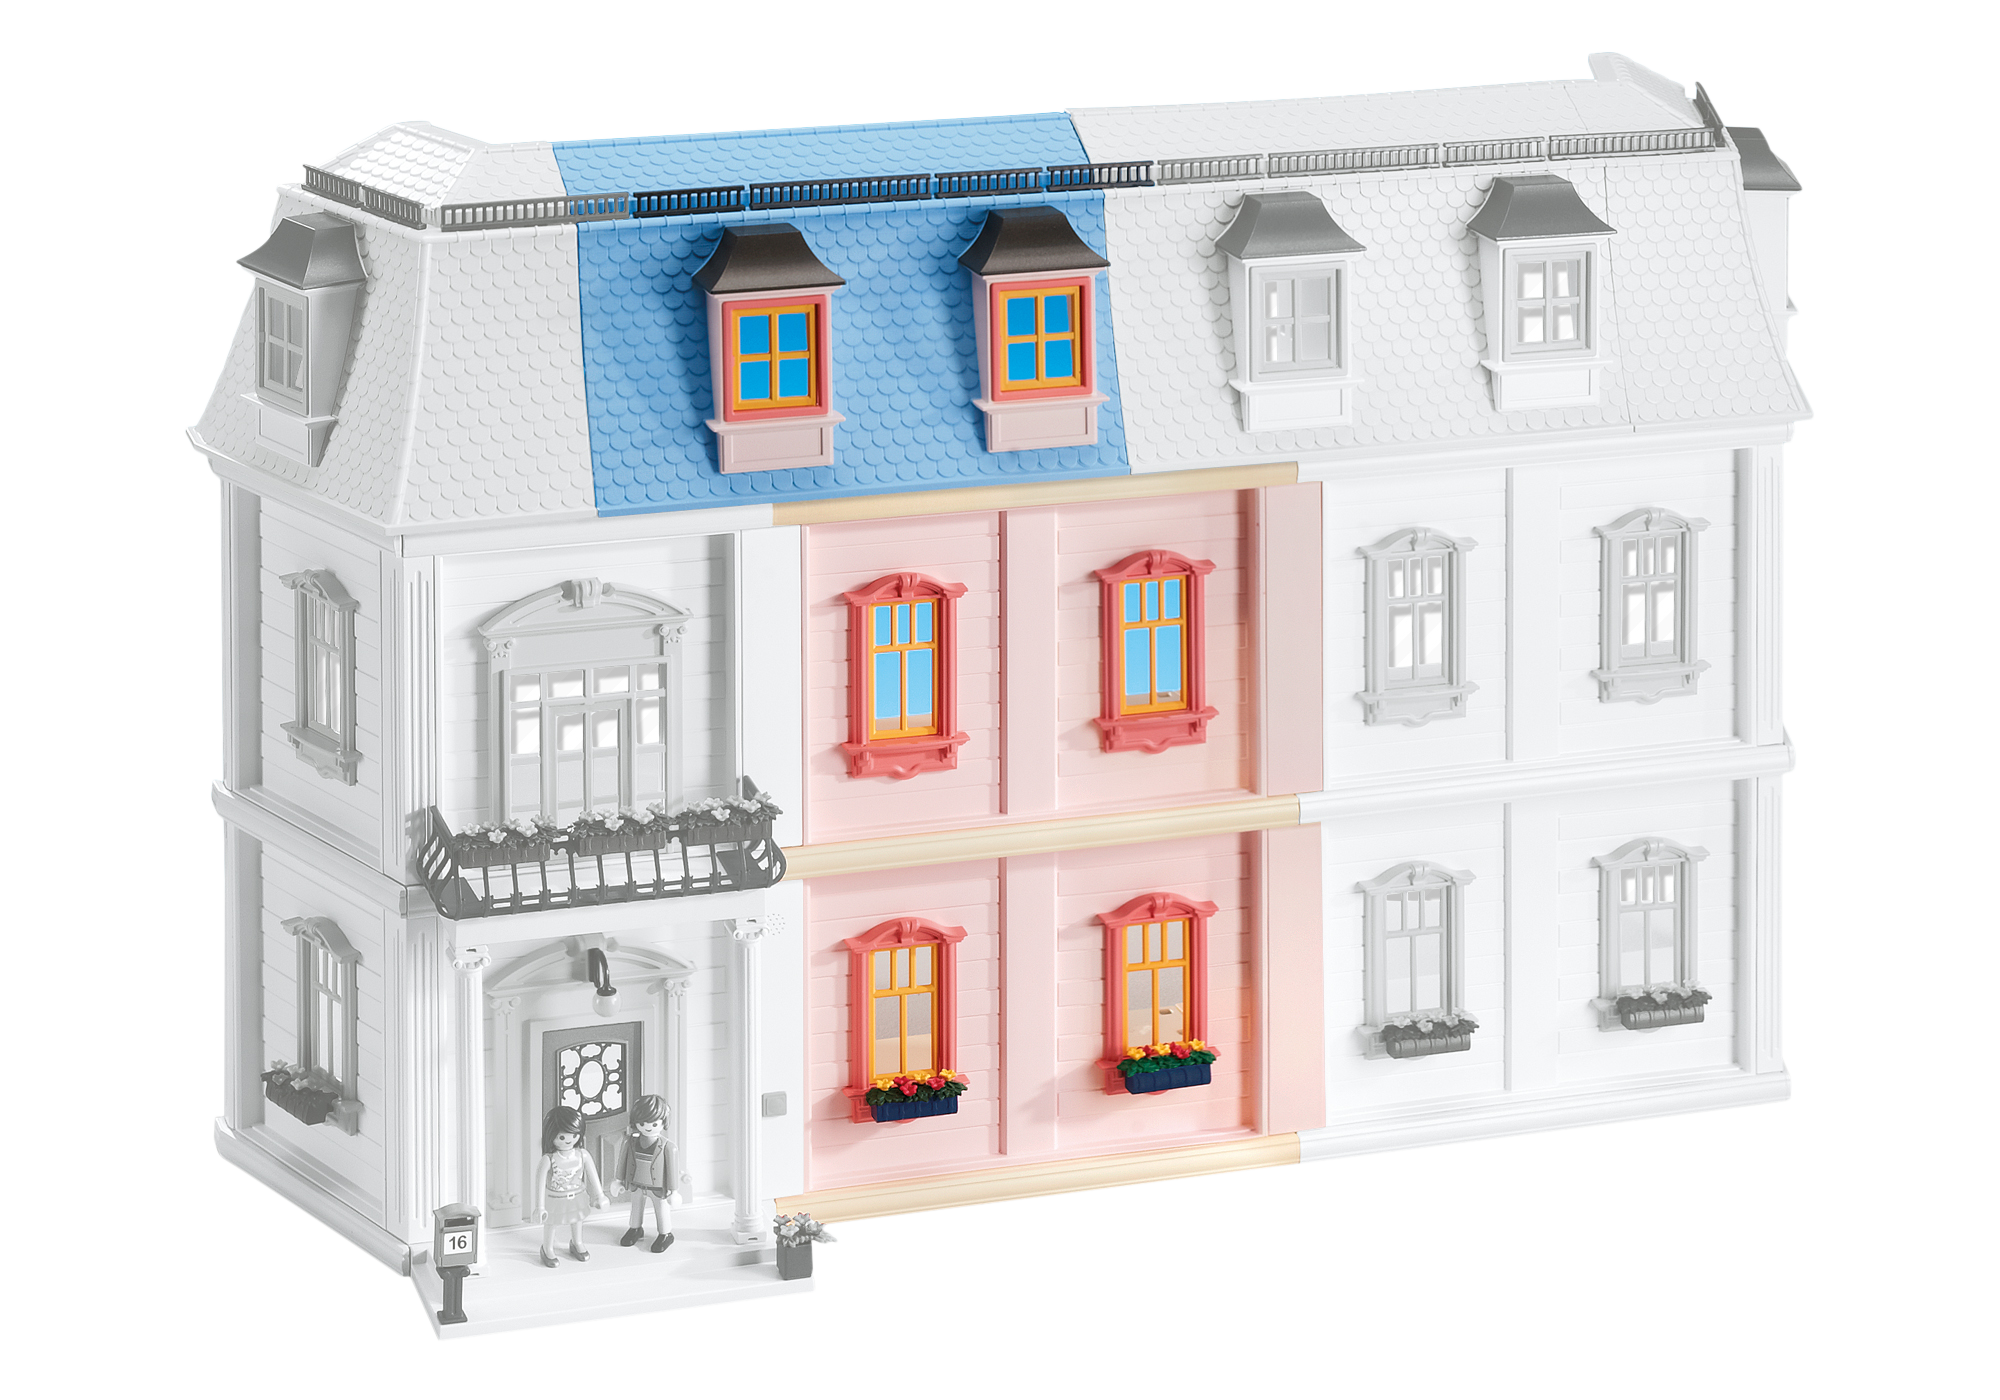 Horizontal Extension For Deluxe Dollhouse 5303 6452 Playmobil Usa